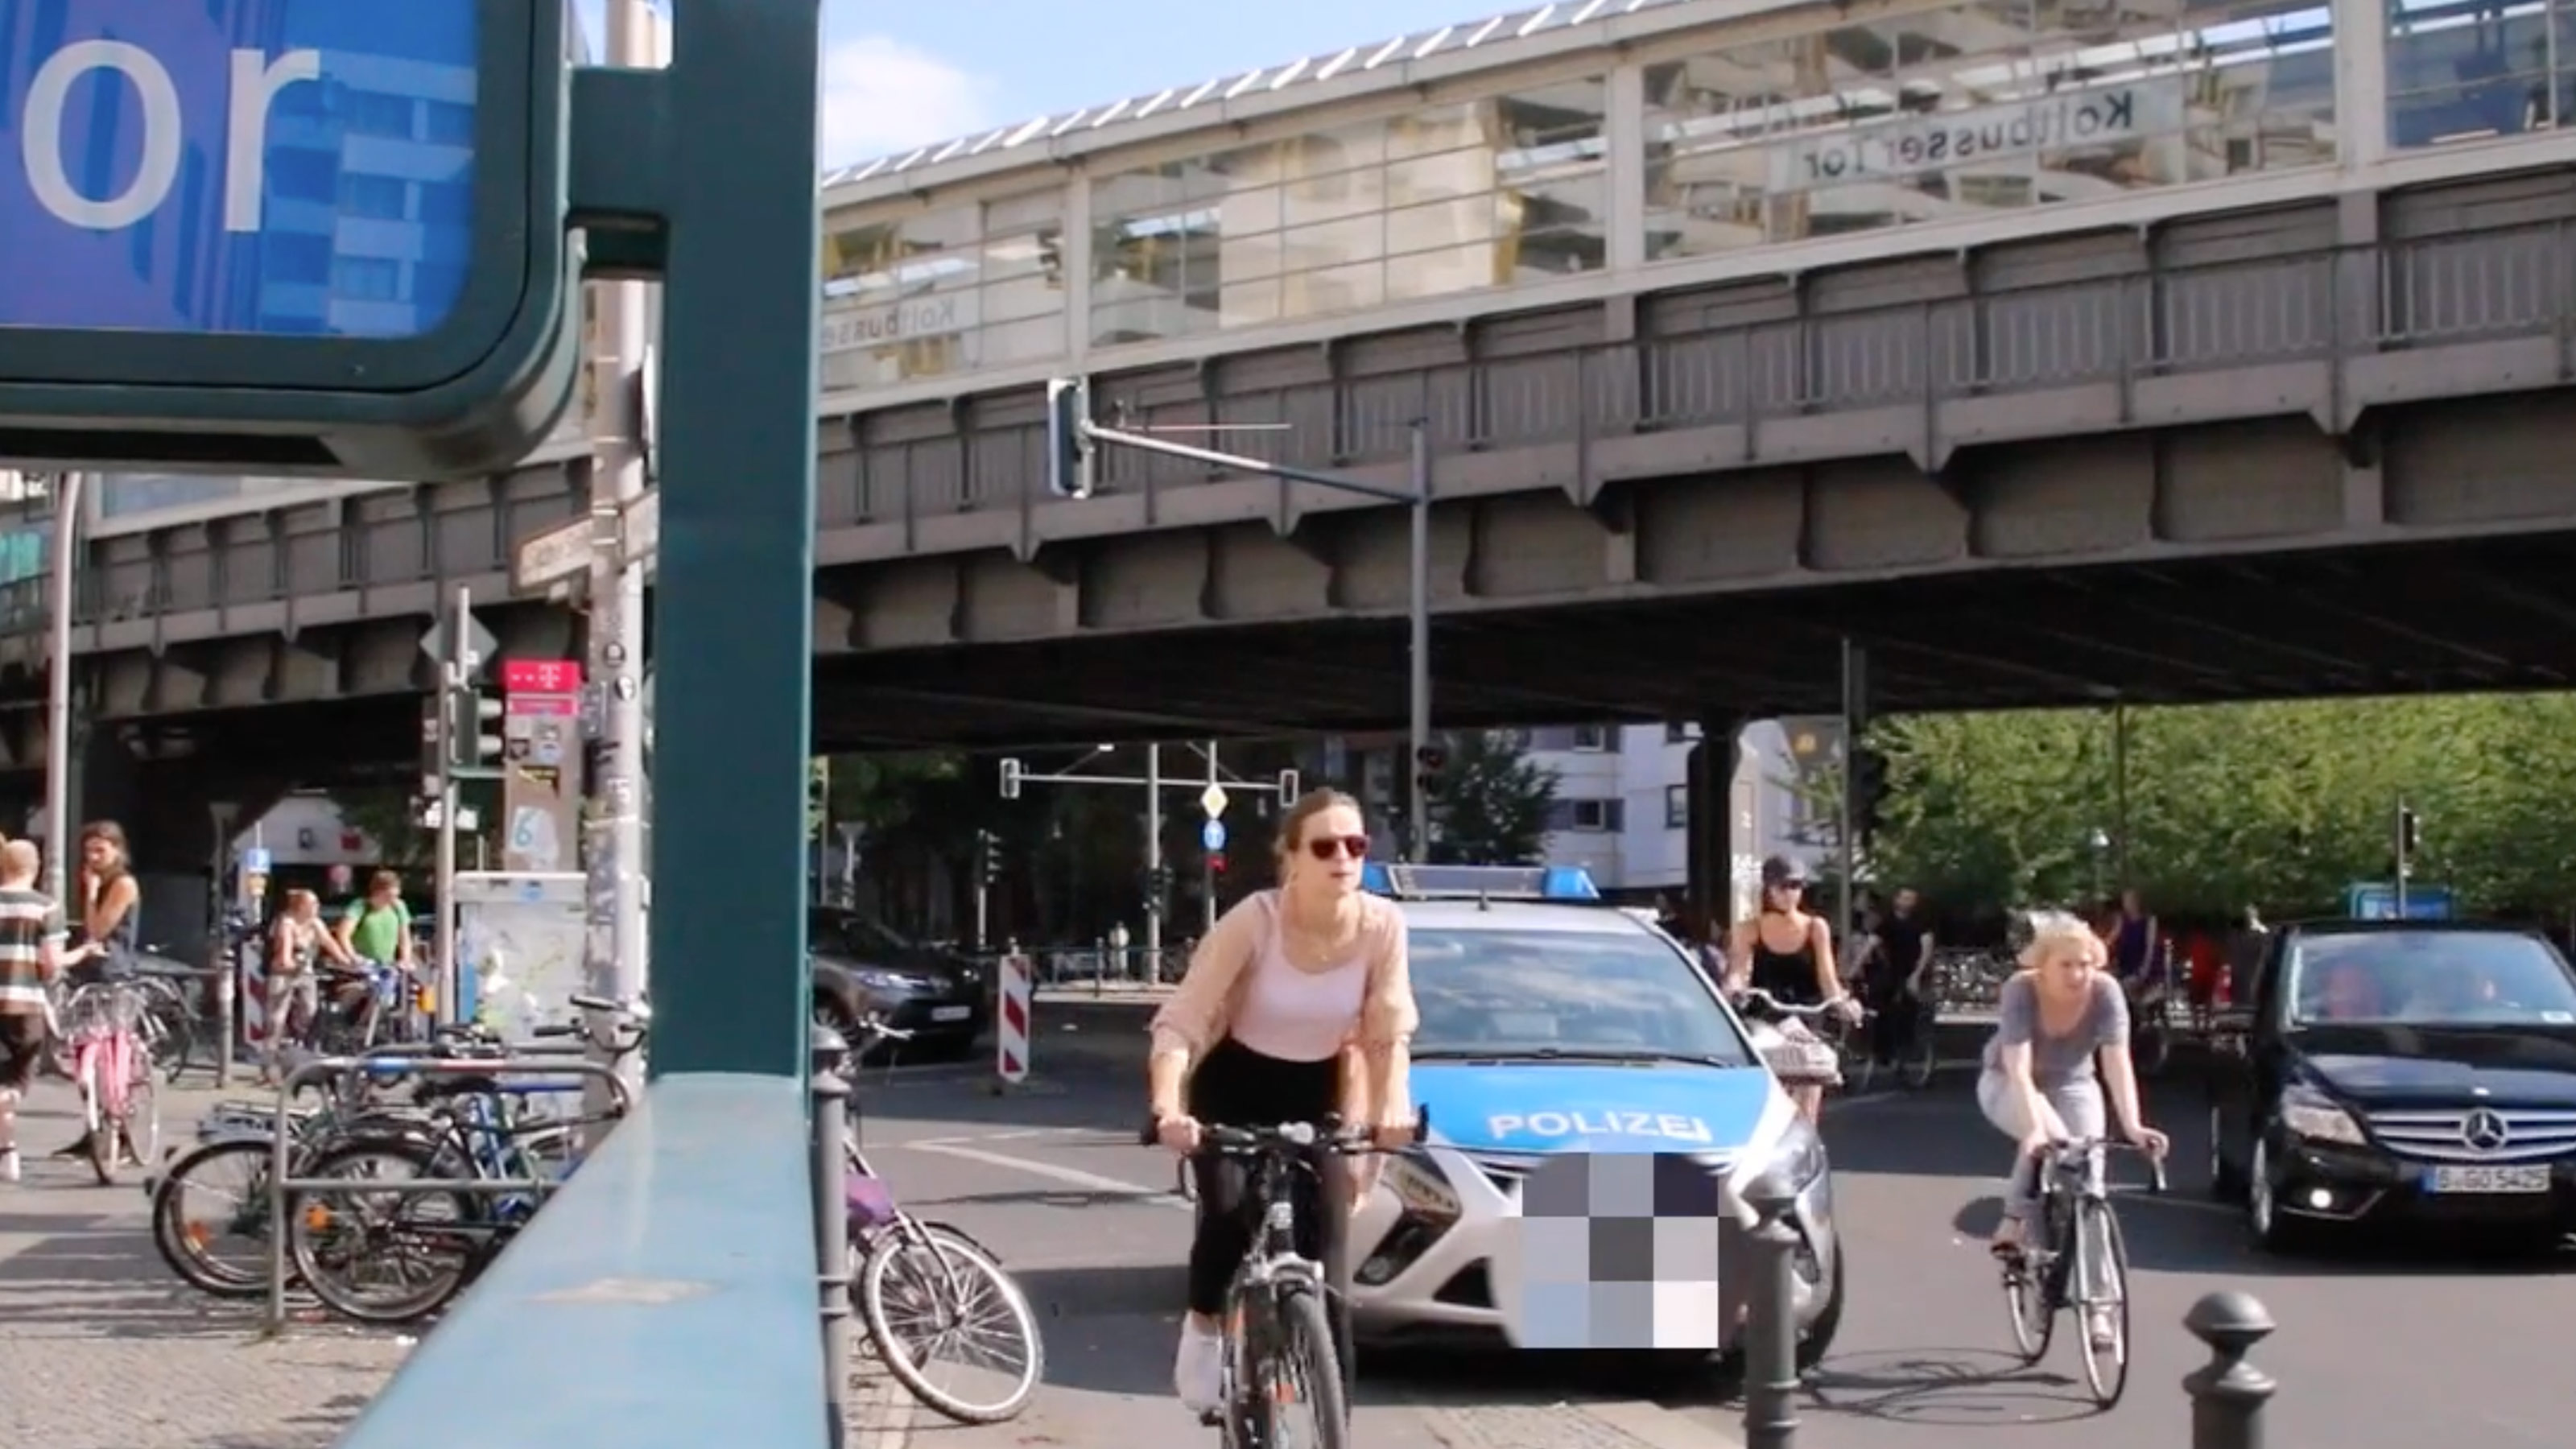 Cycling in Berlin. (Theory vs. Reality)